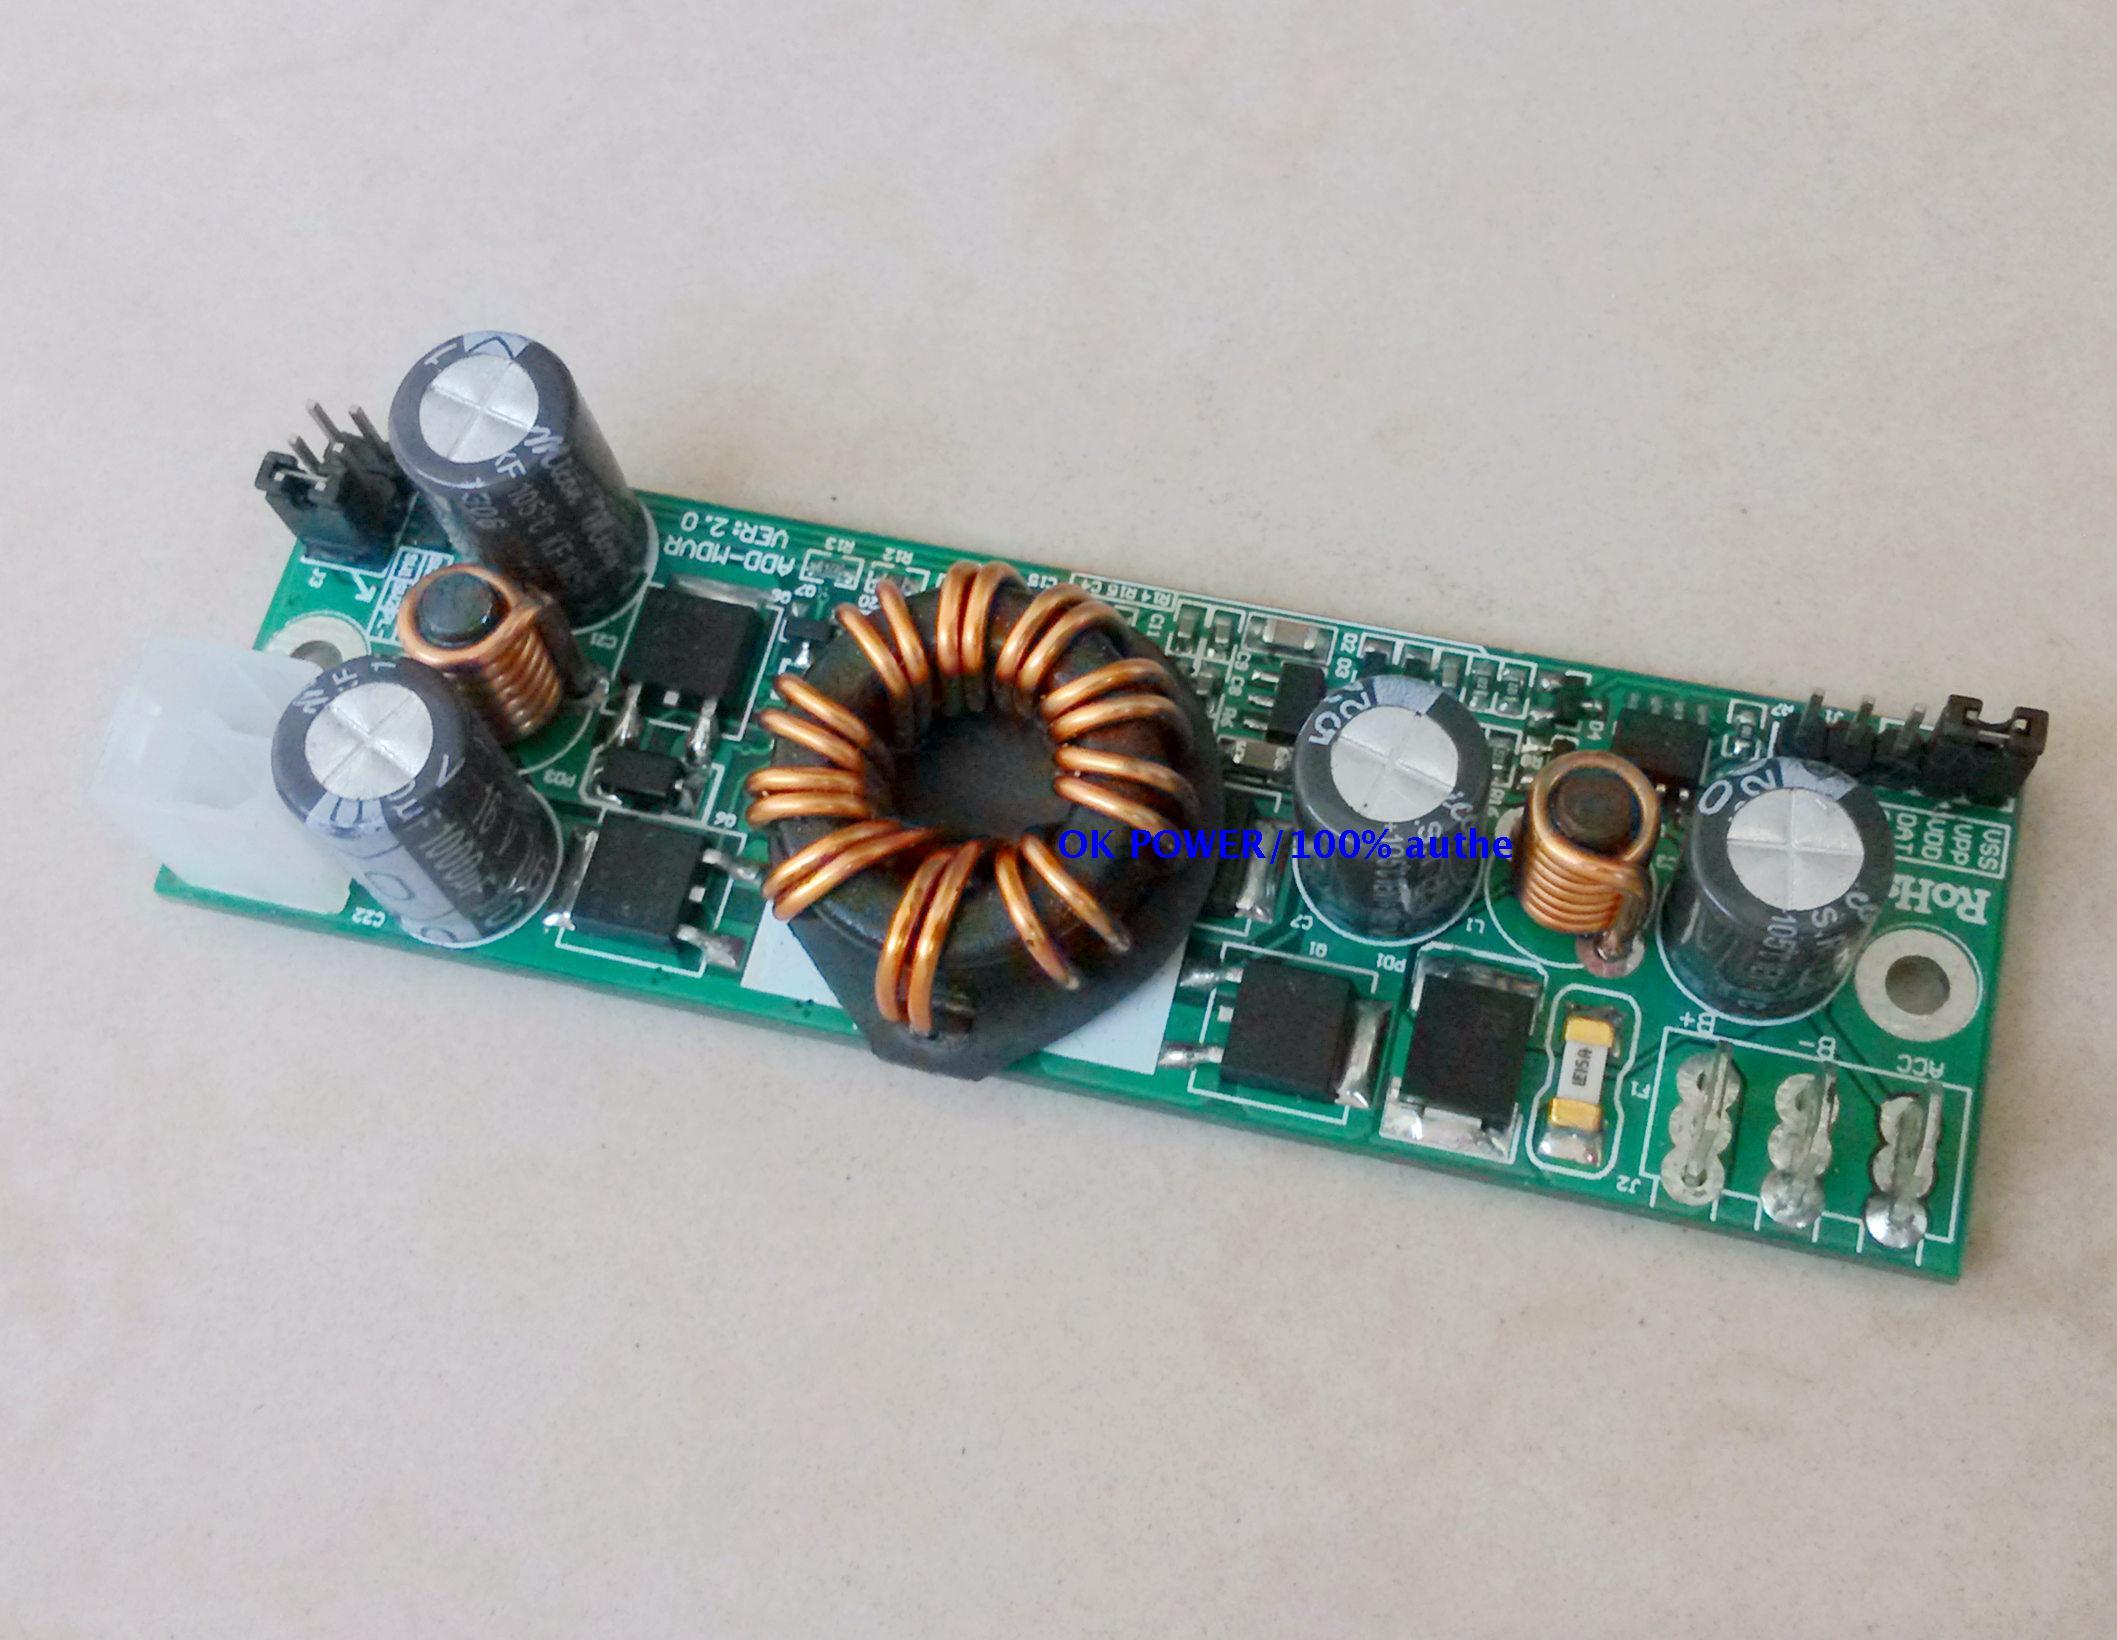 12V/5A Power Module 60W DC Power, Small Volume, No Fan, Mute, One Machine, Dual-purpose, High Quality and High Price.